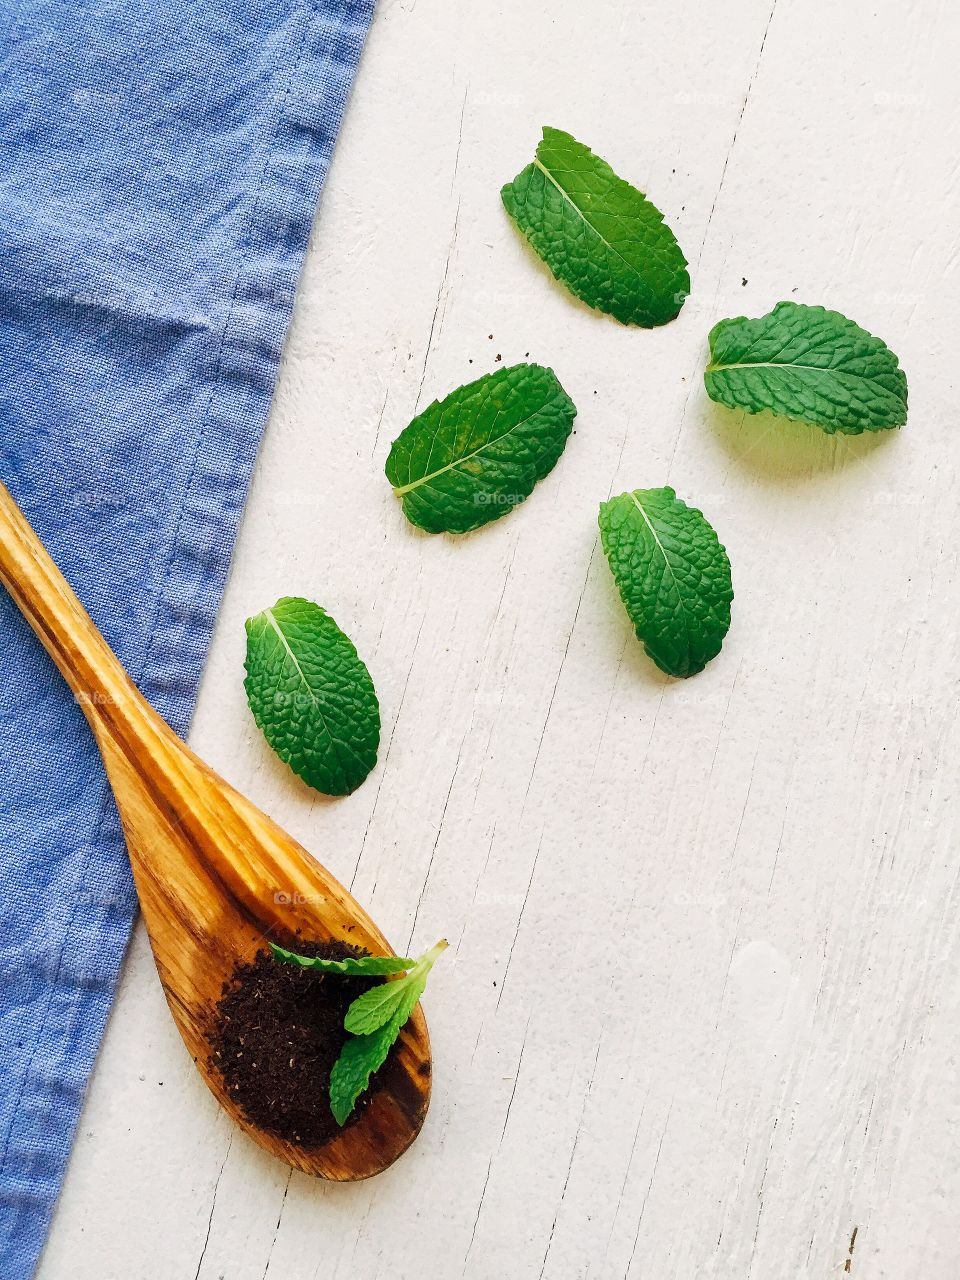 Dried tea leaves on wooden spoon with mint leaves